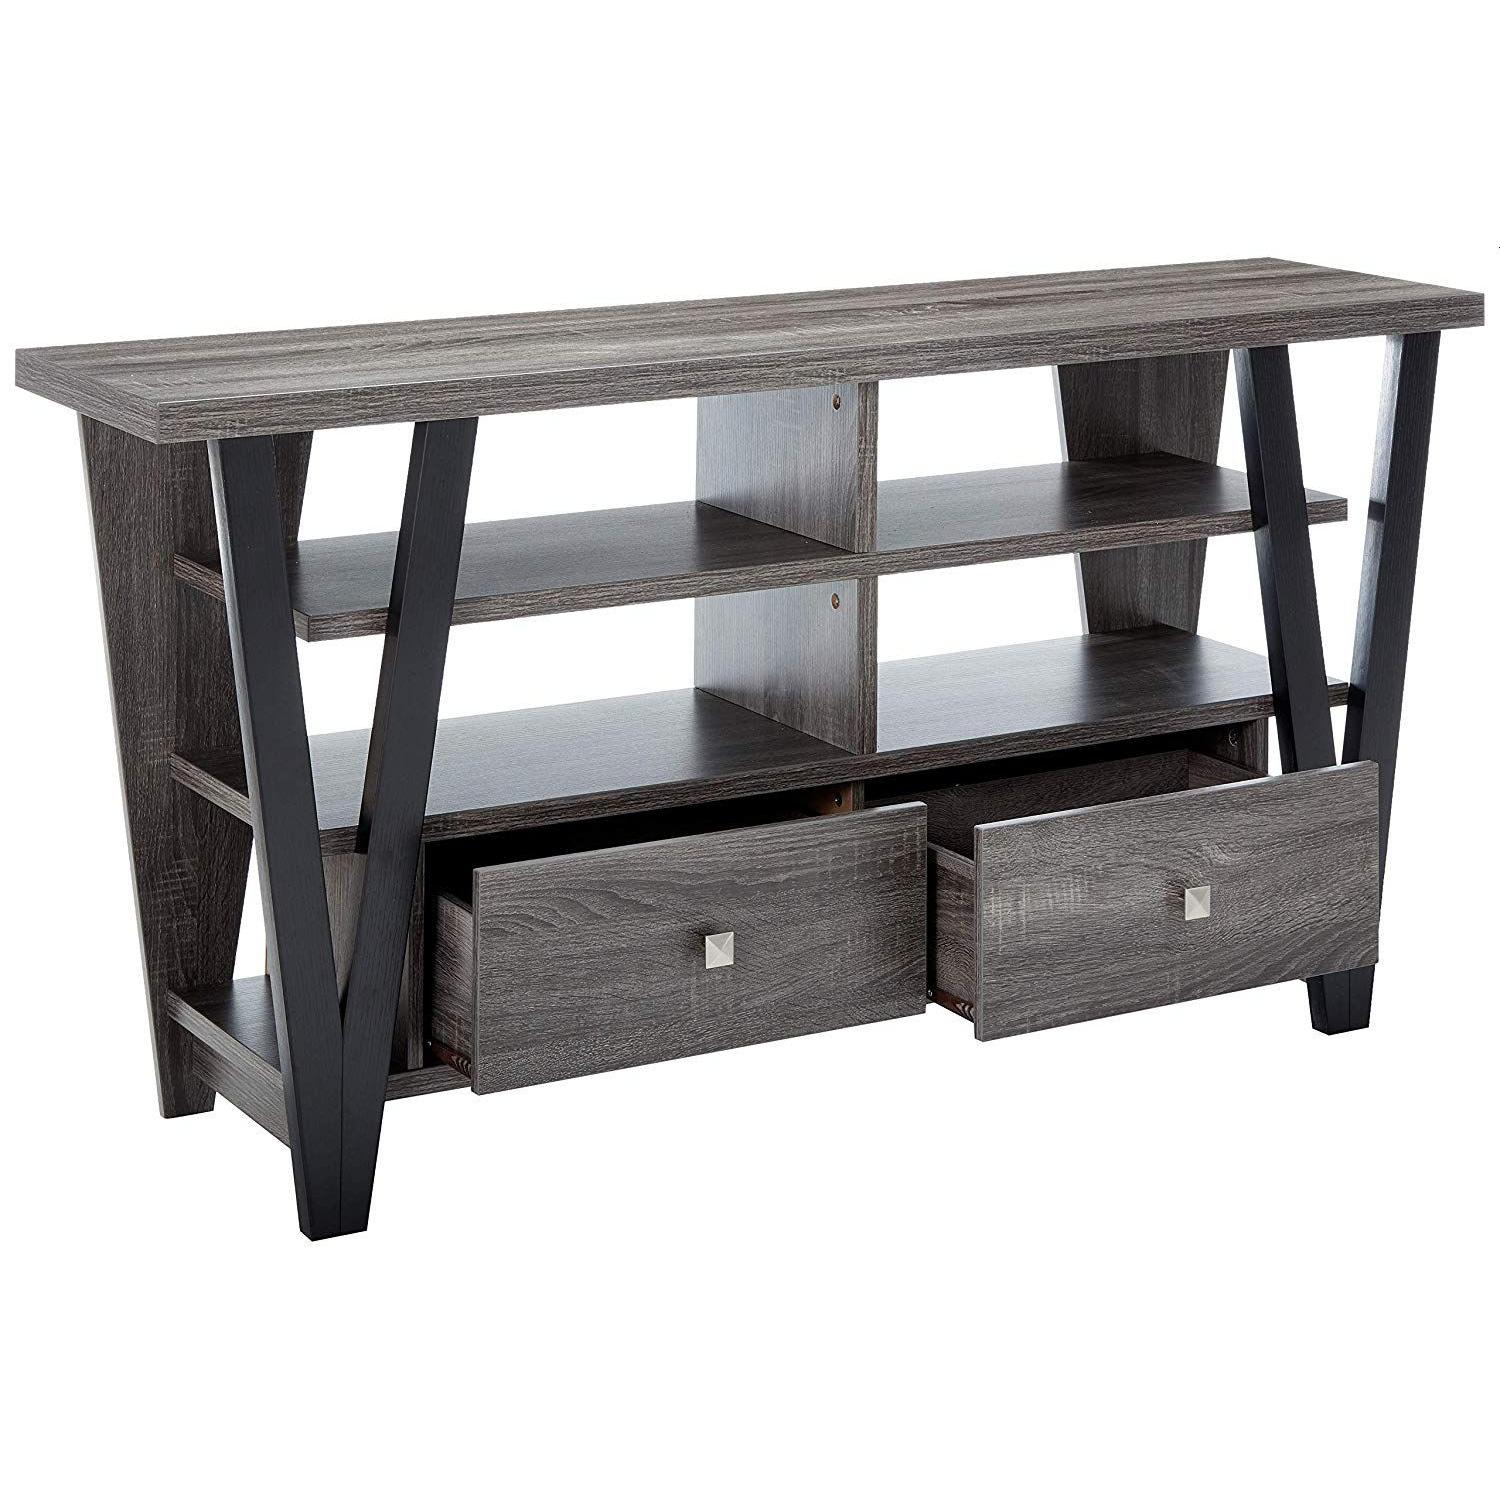 Modern TV Stand in Grey-Black Finish w/ Shelves & Drawers - image-0